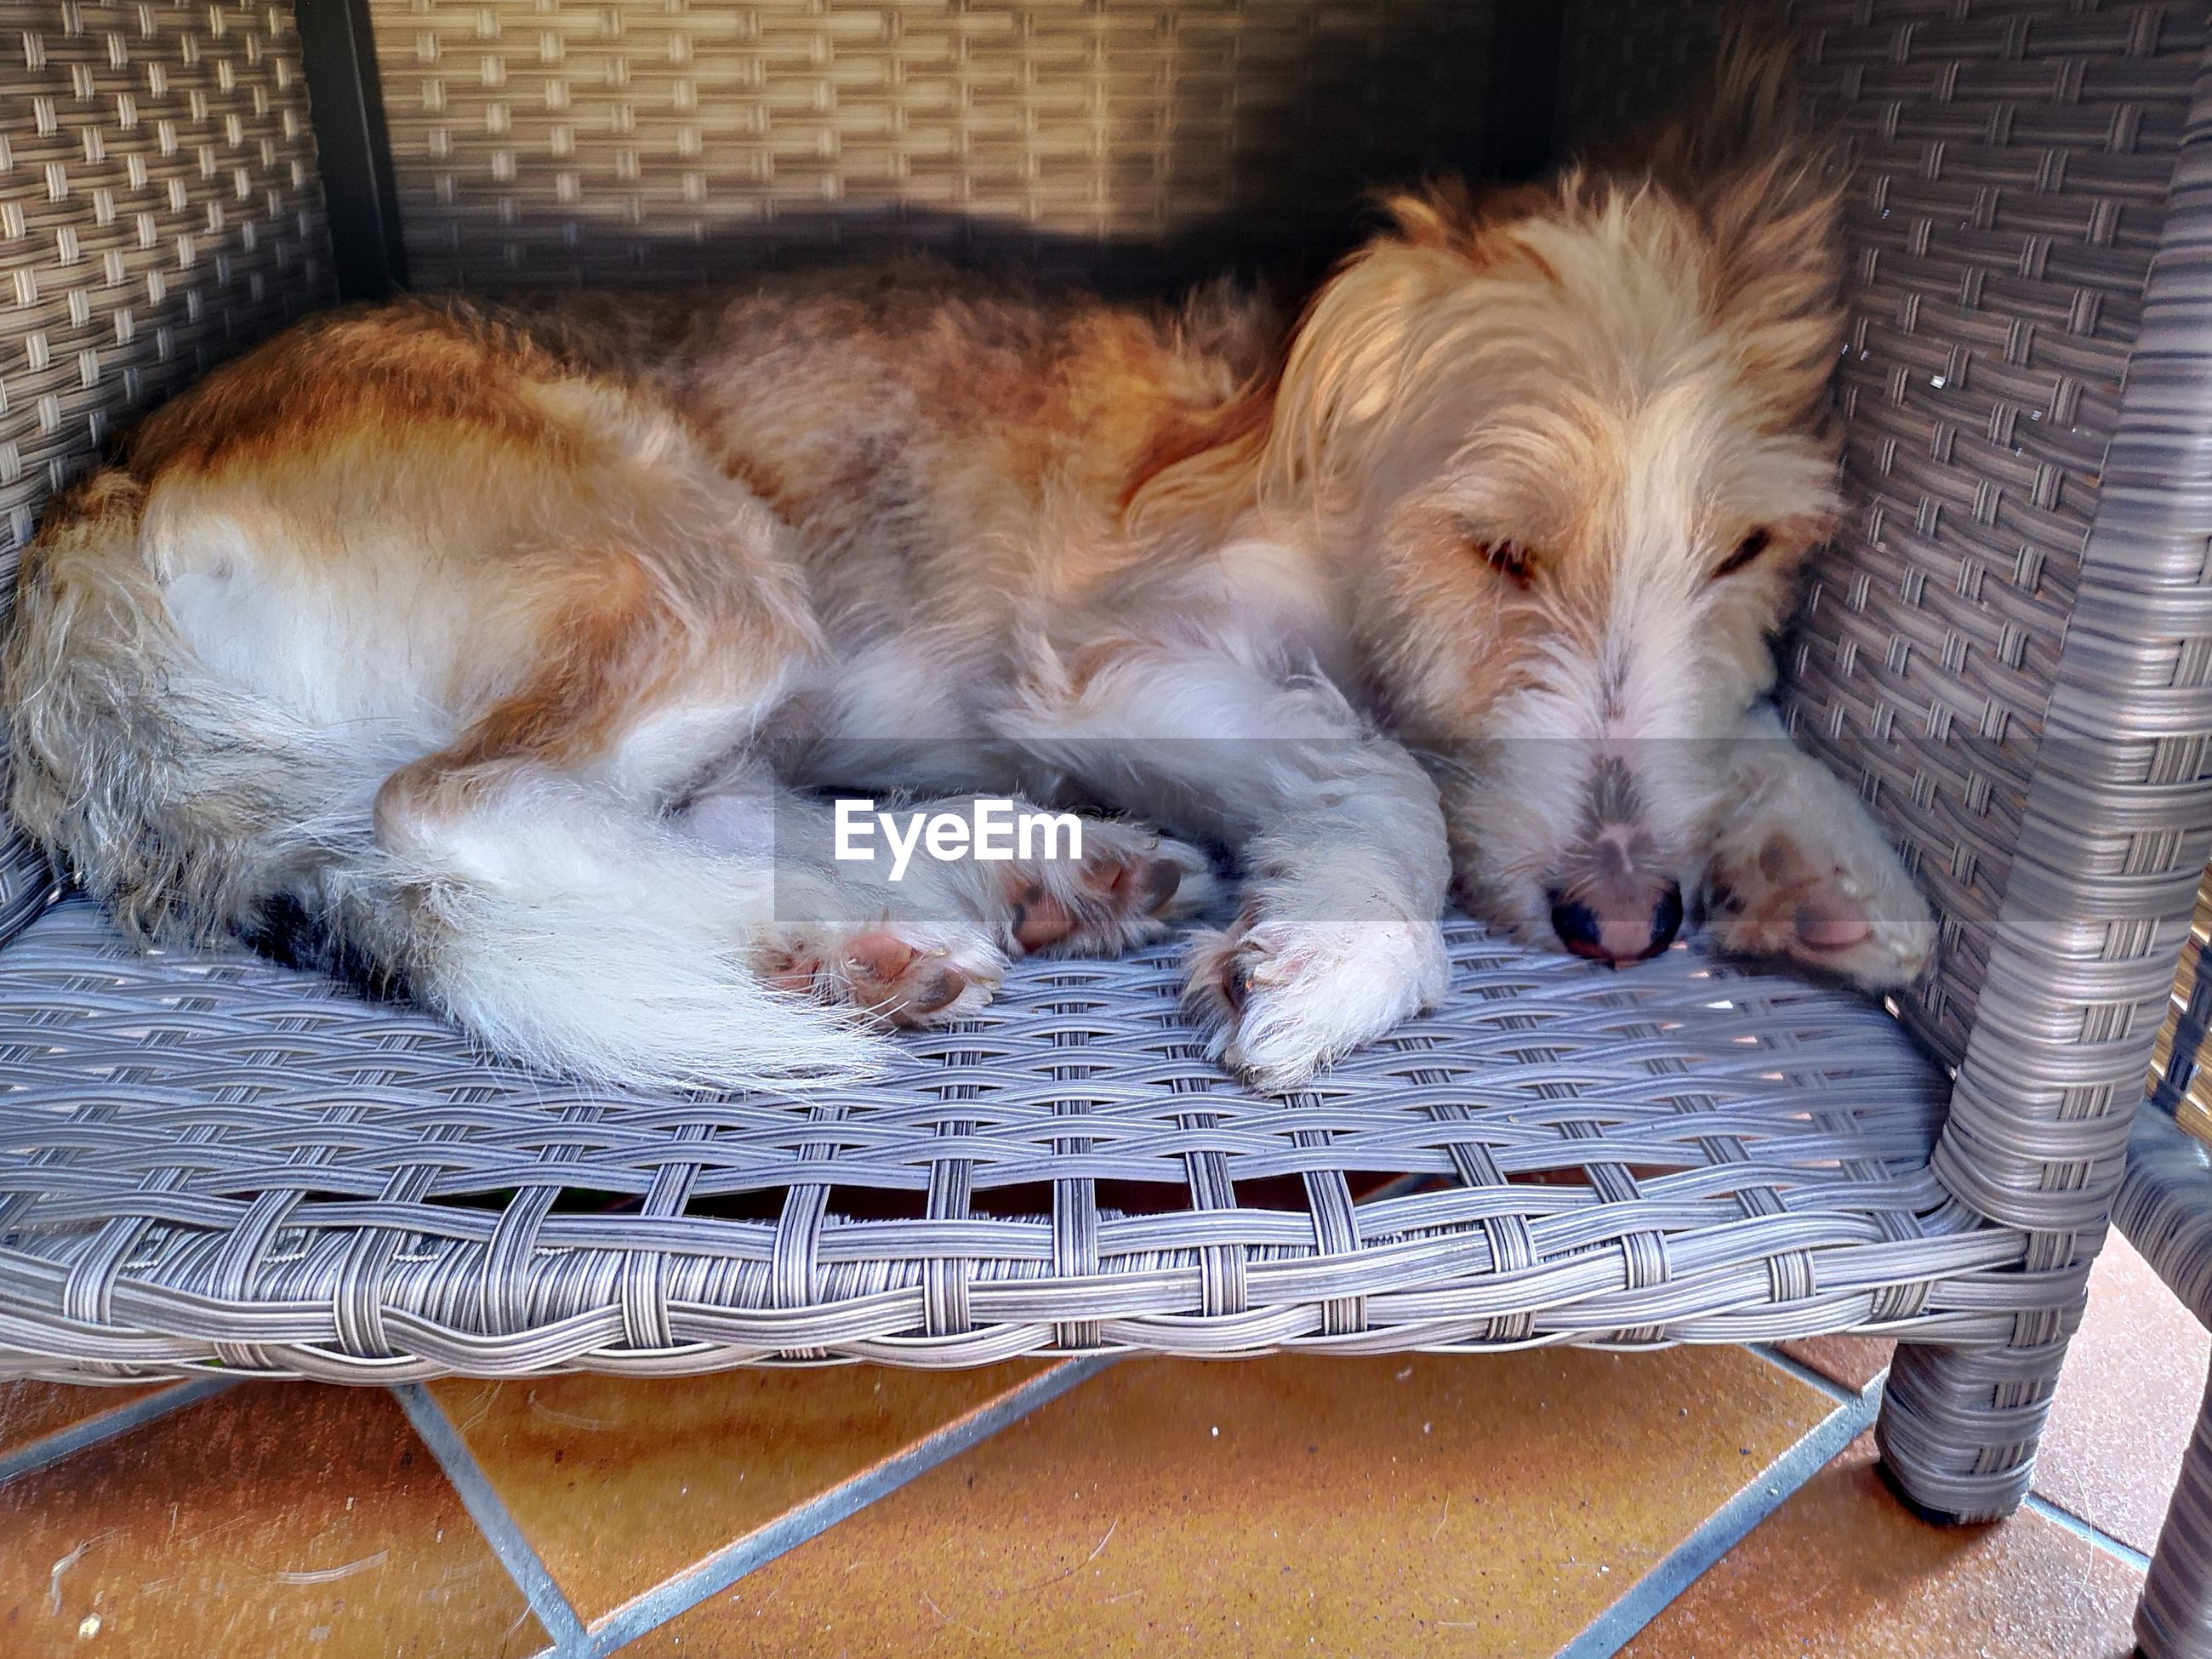 DOG SLEEPING IN FRONT OF BASKET